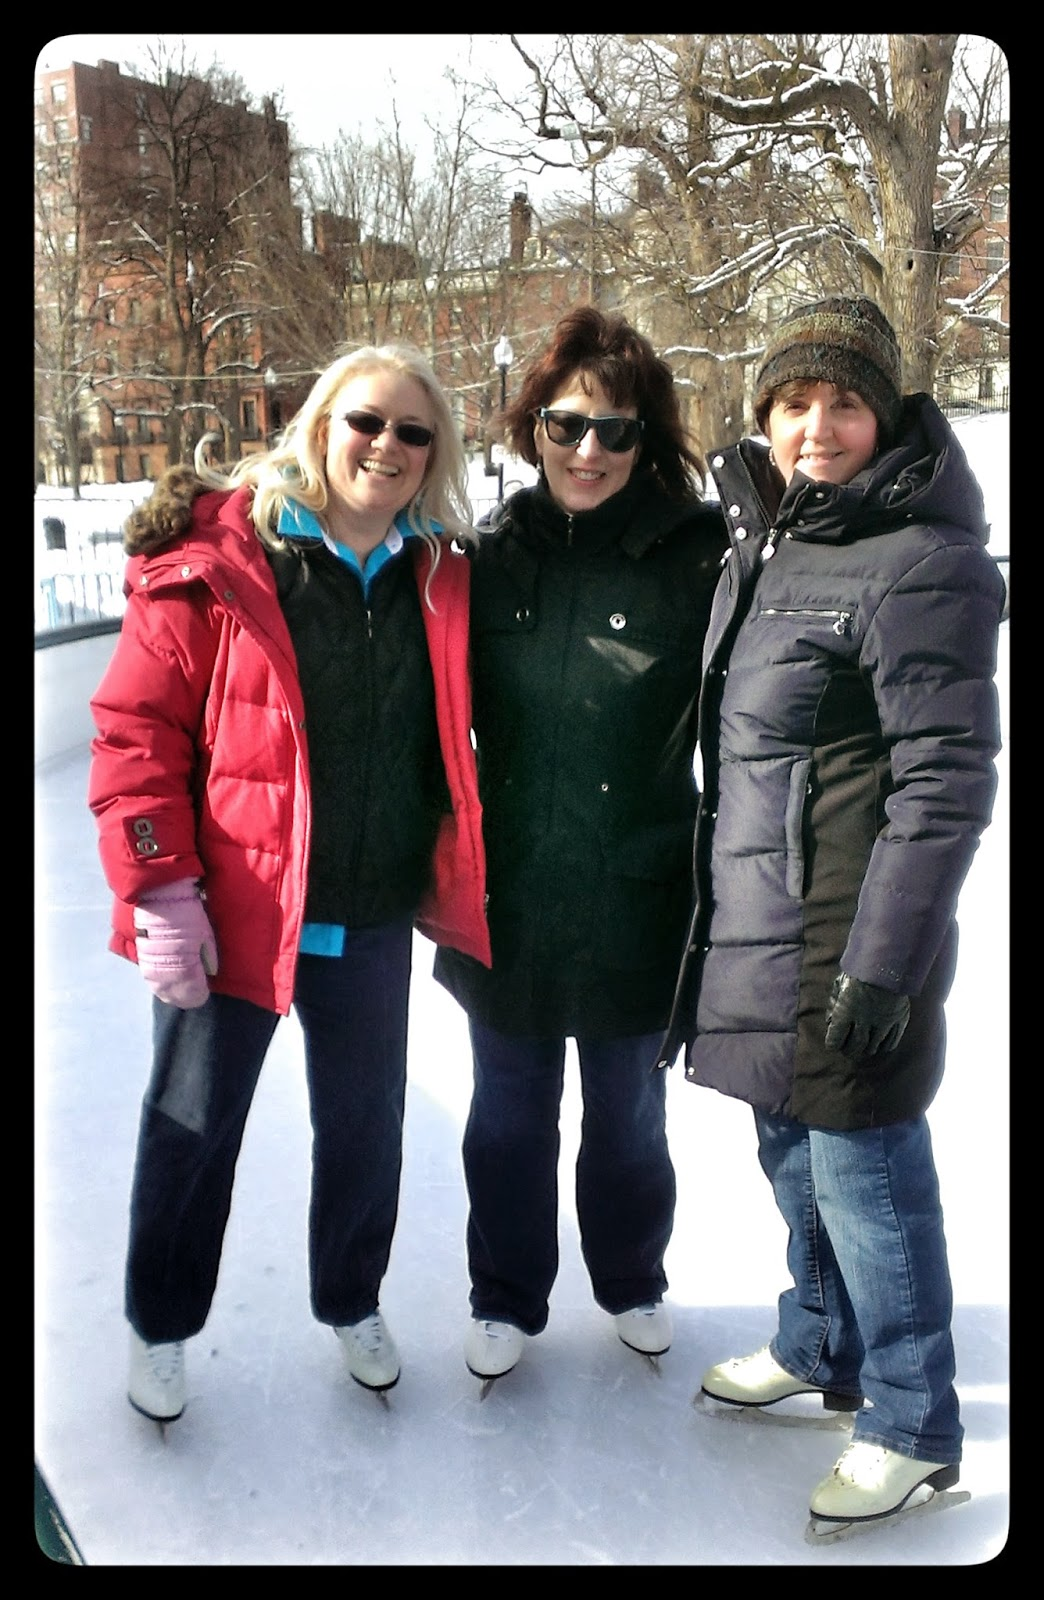 girlfriends ice skating in Boston